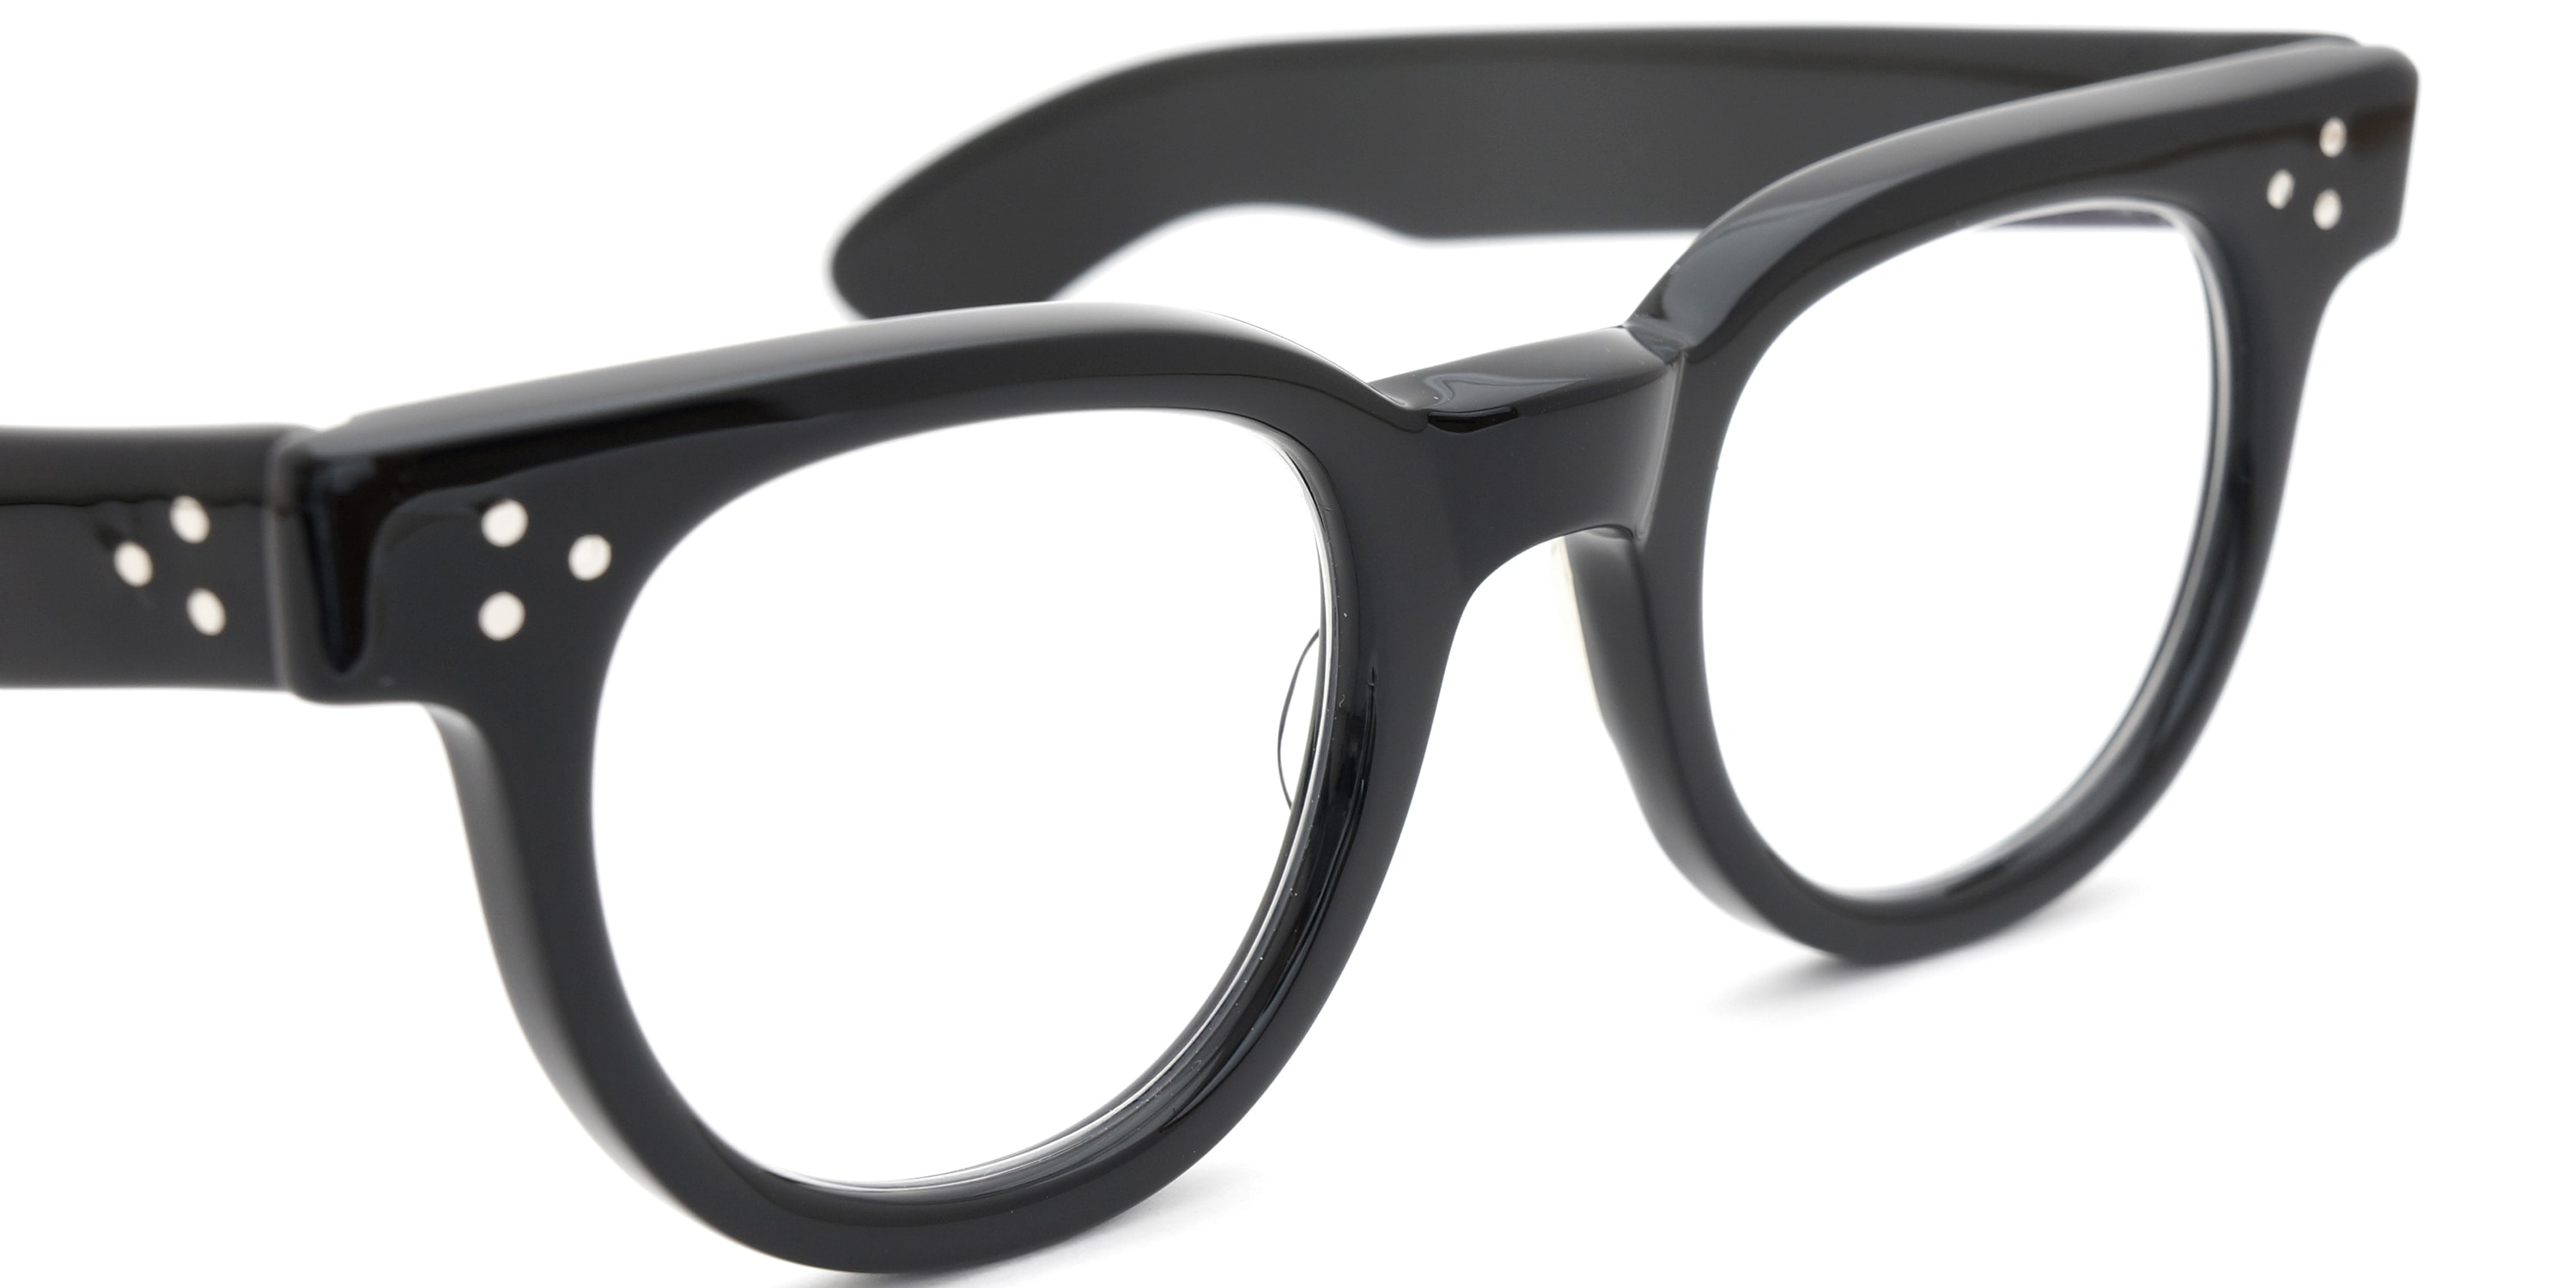 The Spectacle メガネ 1950s-70s TART OPTICAL FDR (FRAME USA) BLACK 44-24 イメージ8